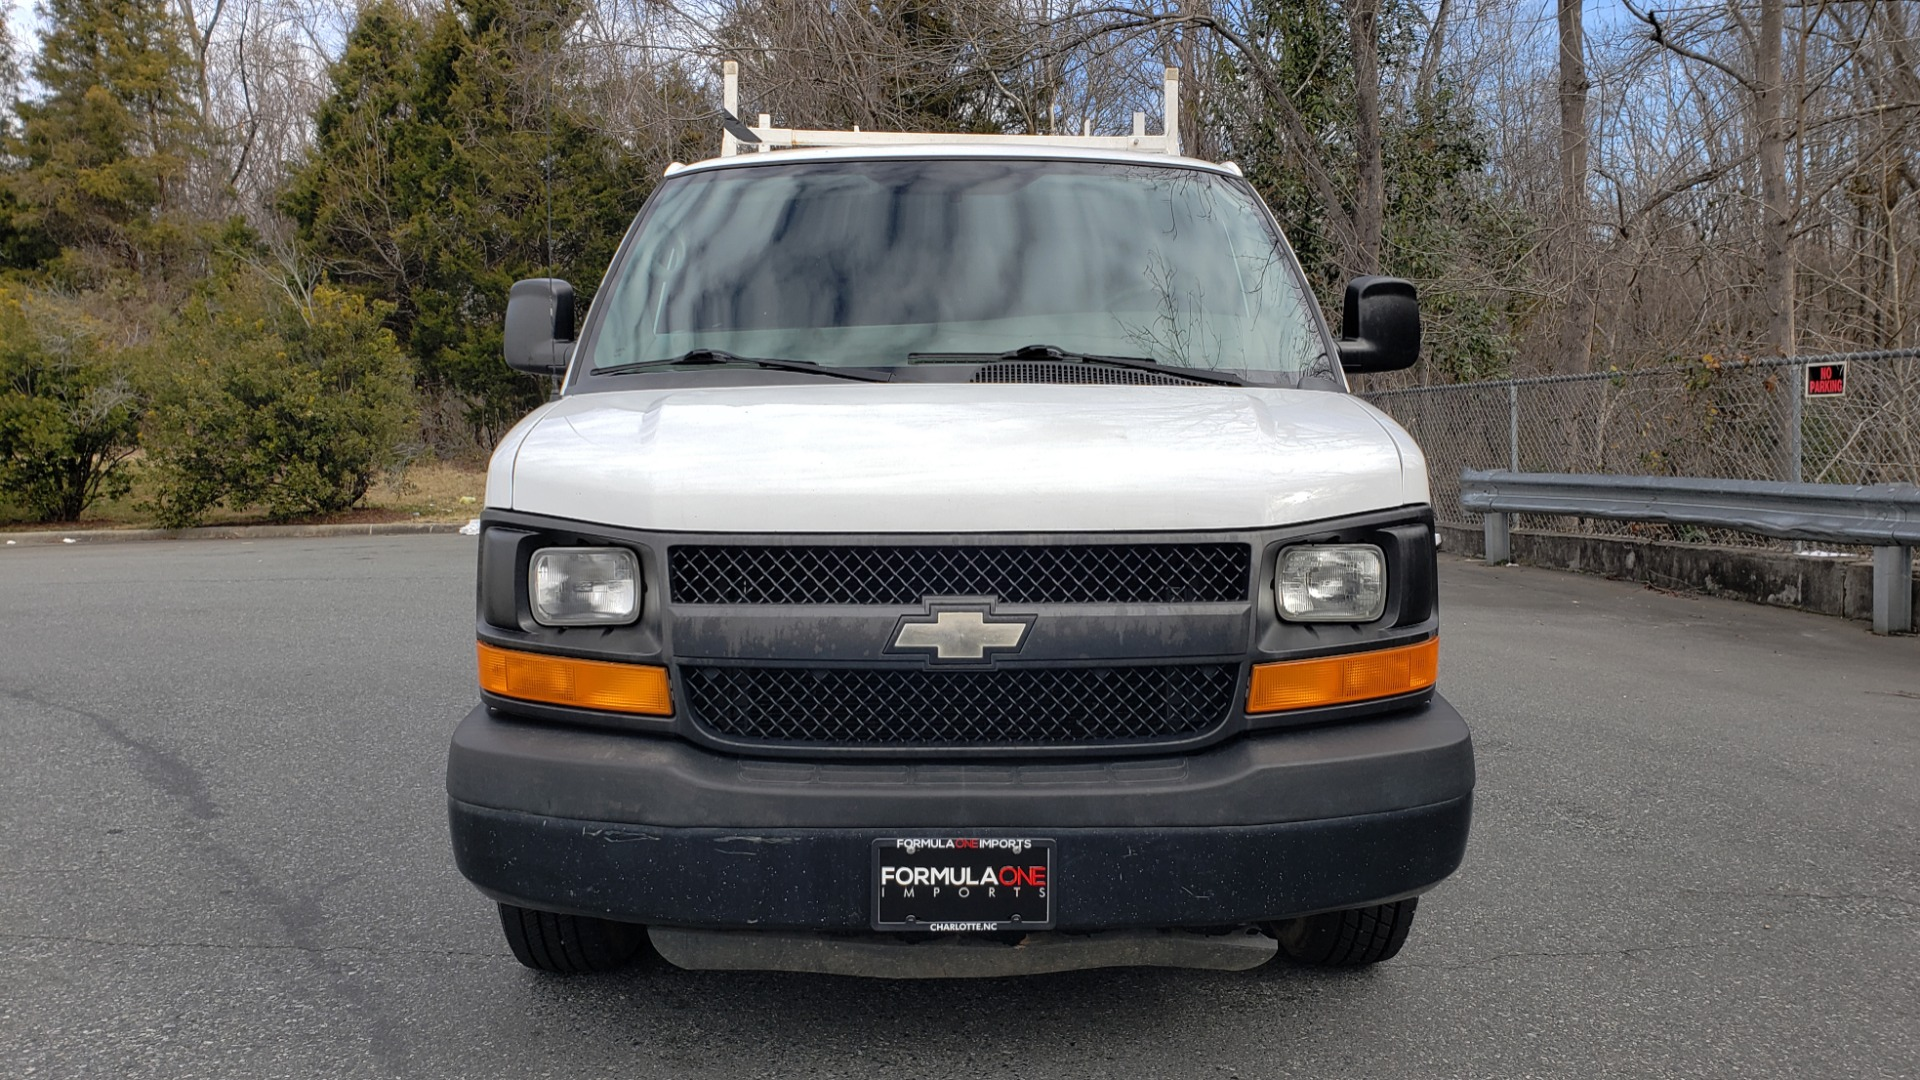 Used 2012 Chevrolet EXPRESS CARGO VAN 1500 / 135 WB / 4.3L V6 / 4-SPD AUTO / ROOF RACK for sale $10,995 at Formula Imports in Charlotte NC 28227 11